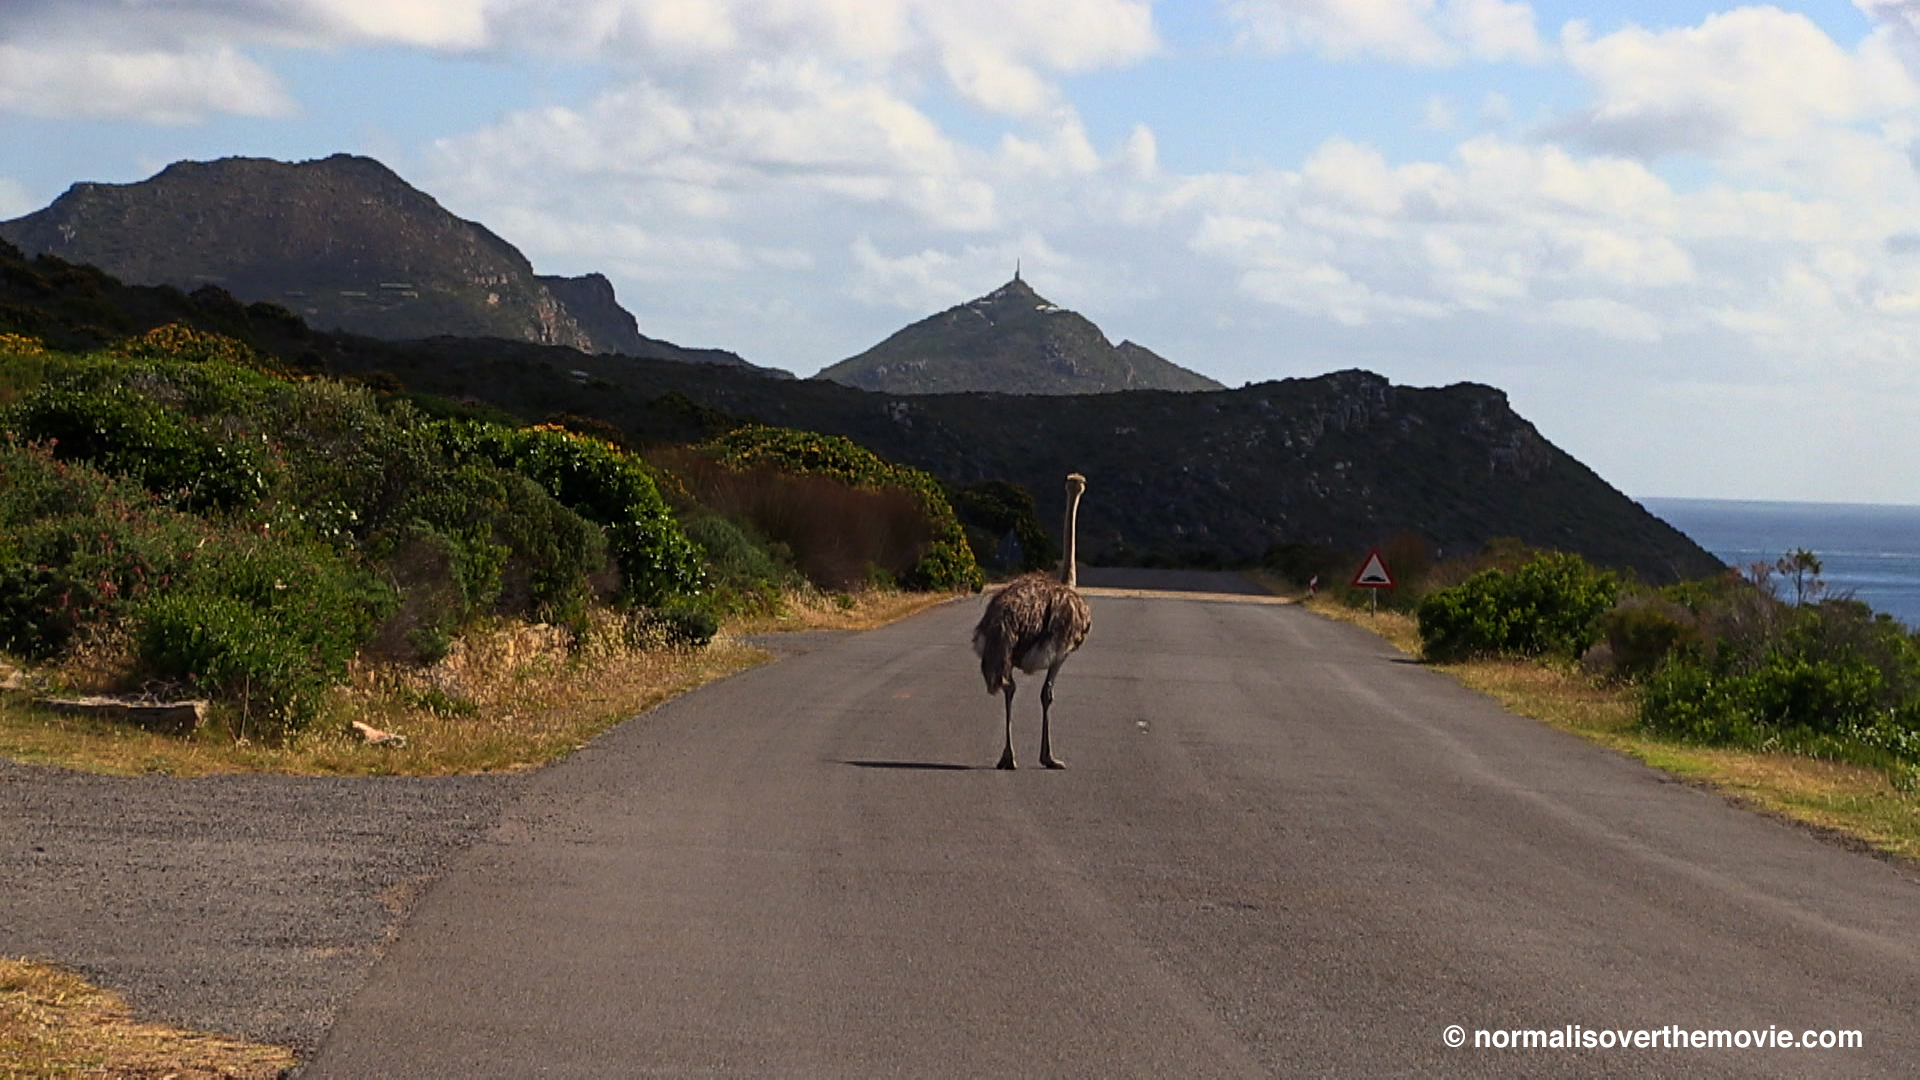 Ostrich on road in Normal Is Over © Renée Scheltema